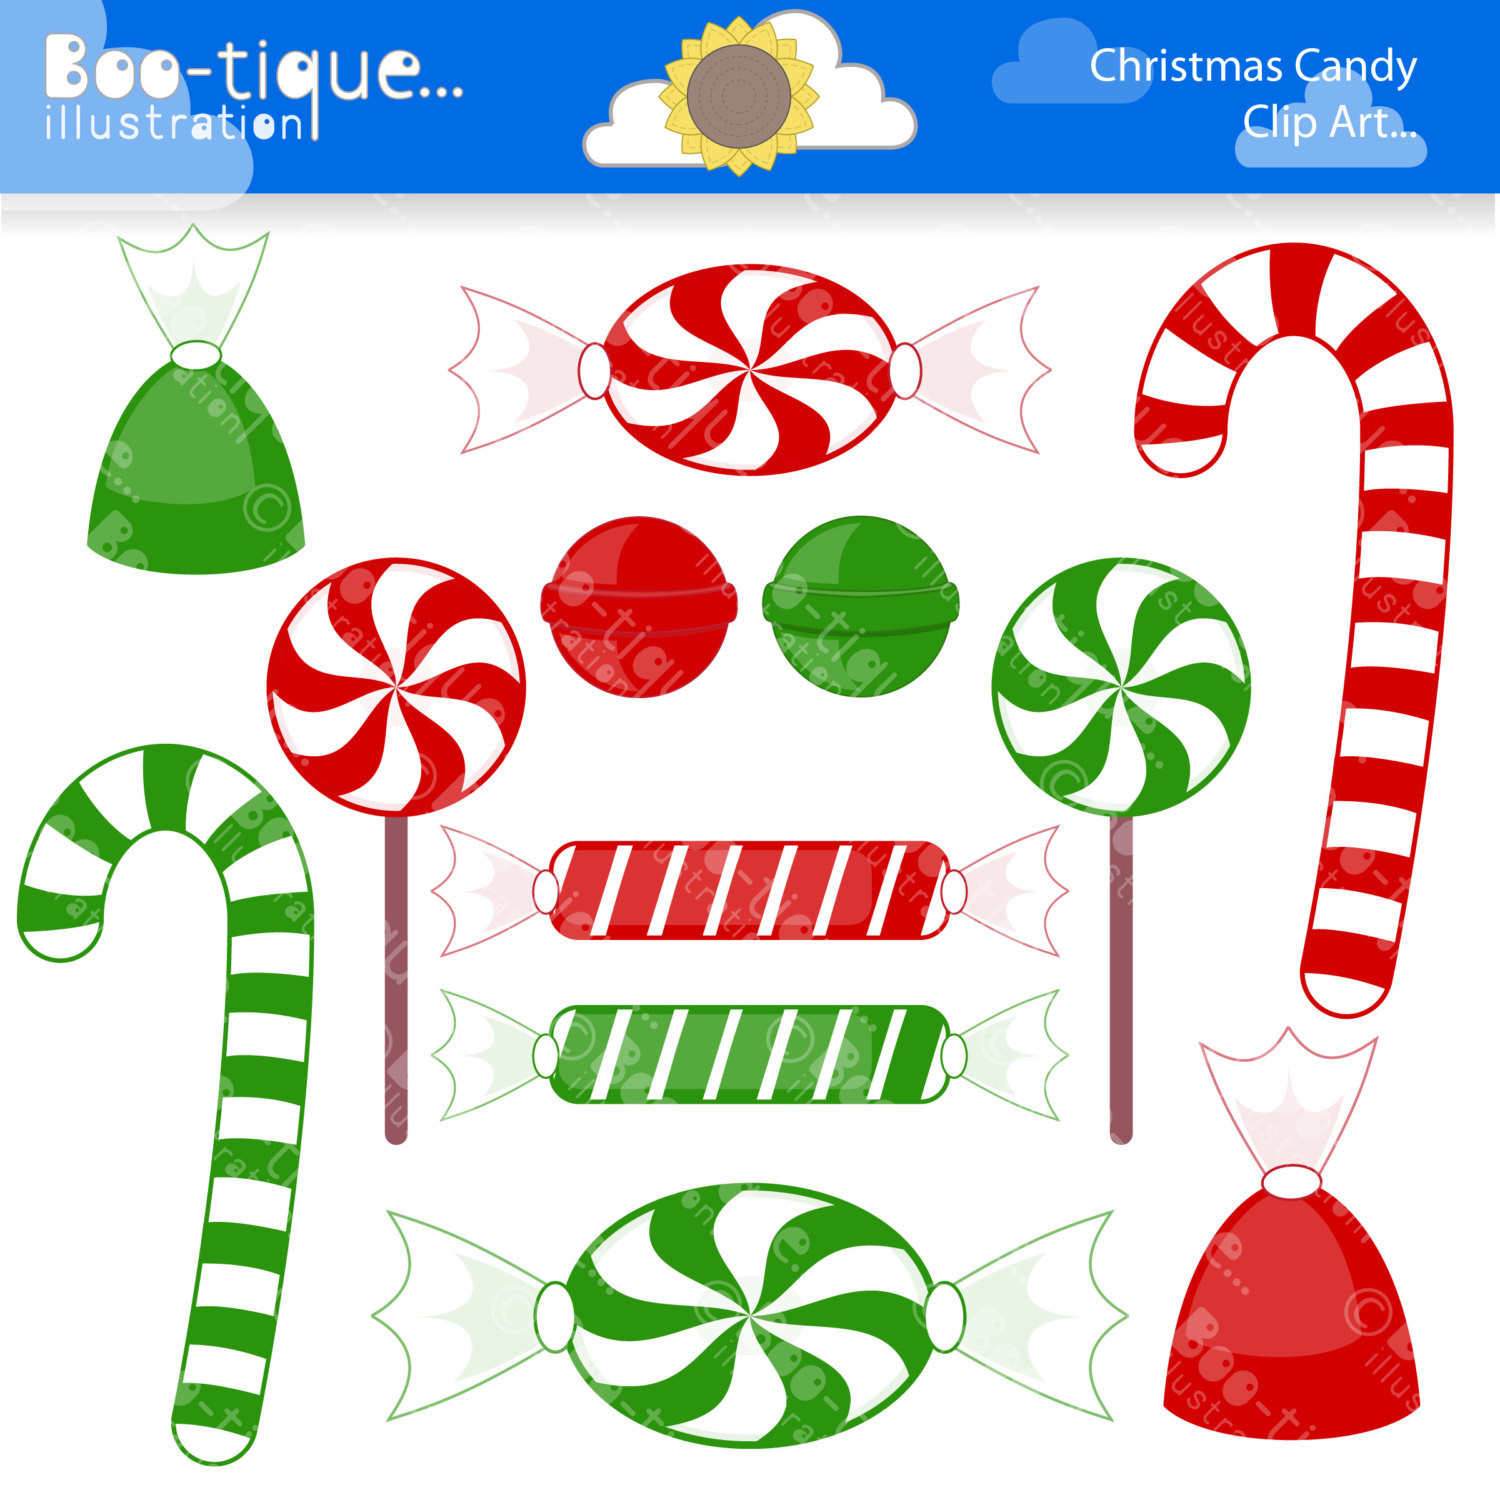 Christmas Candy Clipart  Christmas Candy Digital Clipart for Instant Download